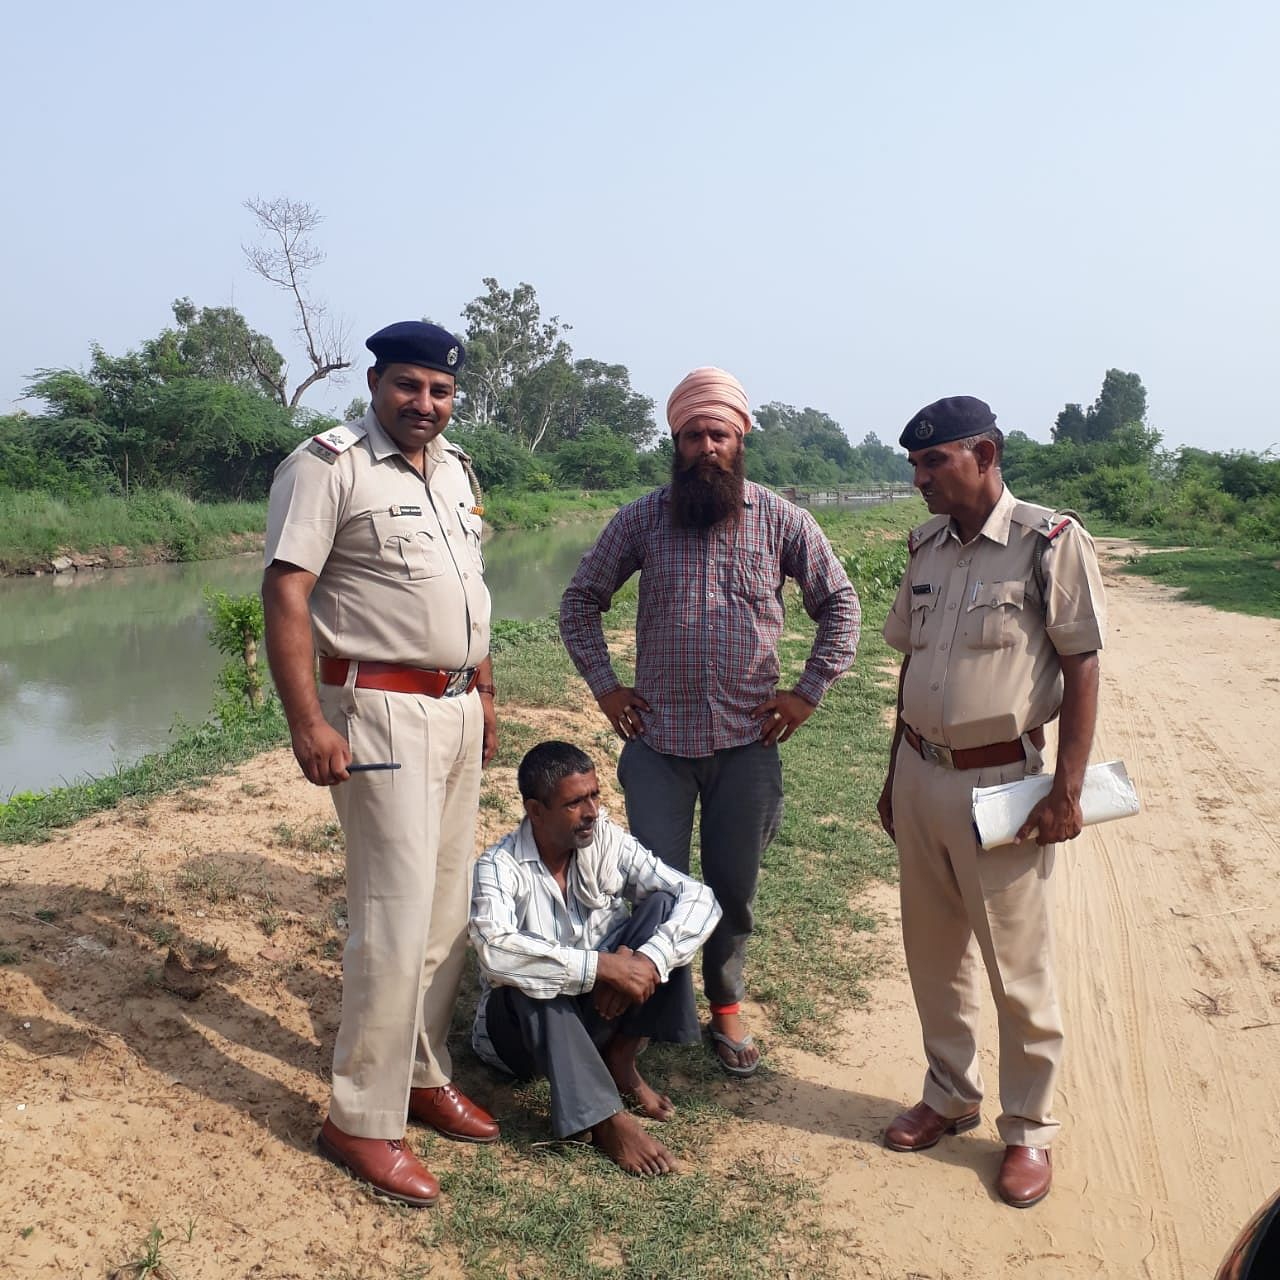 Pargat Singh (In a turban) with a man he saved, alongside local police personnel. (Source: Pargat Singh)